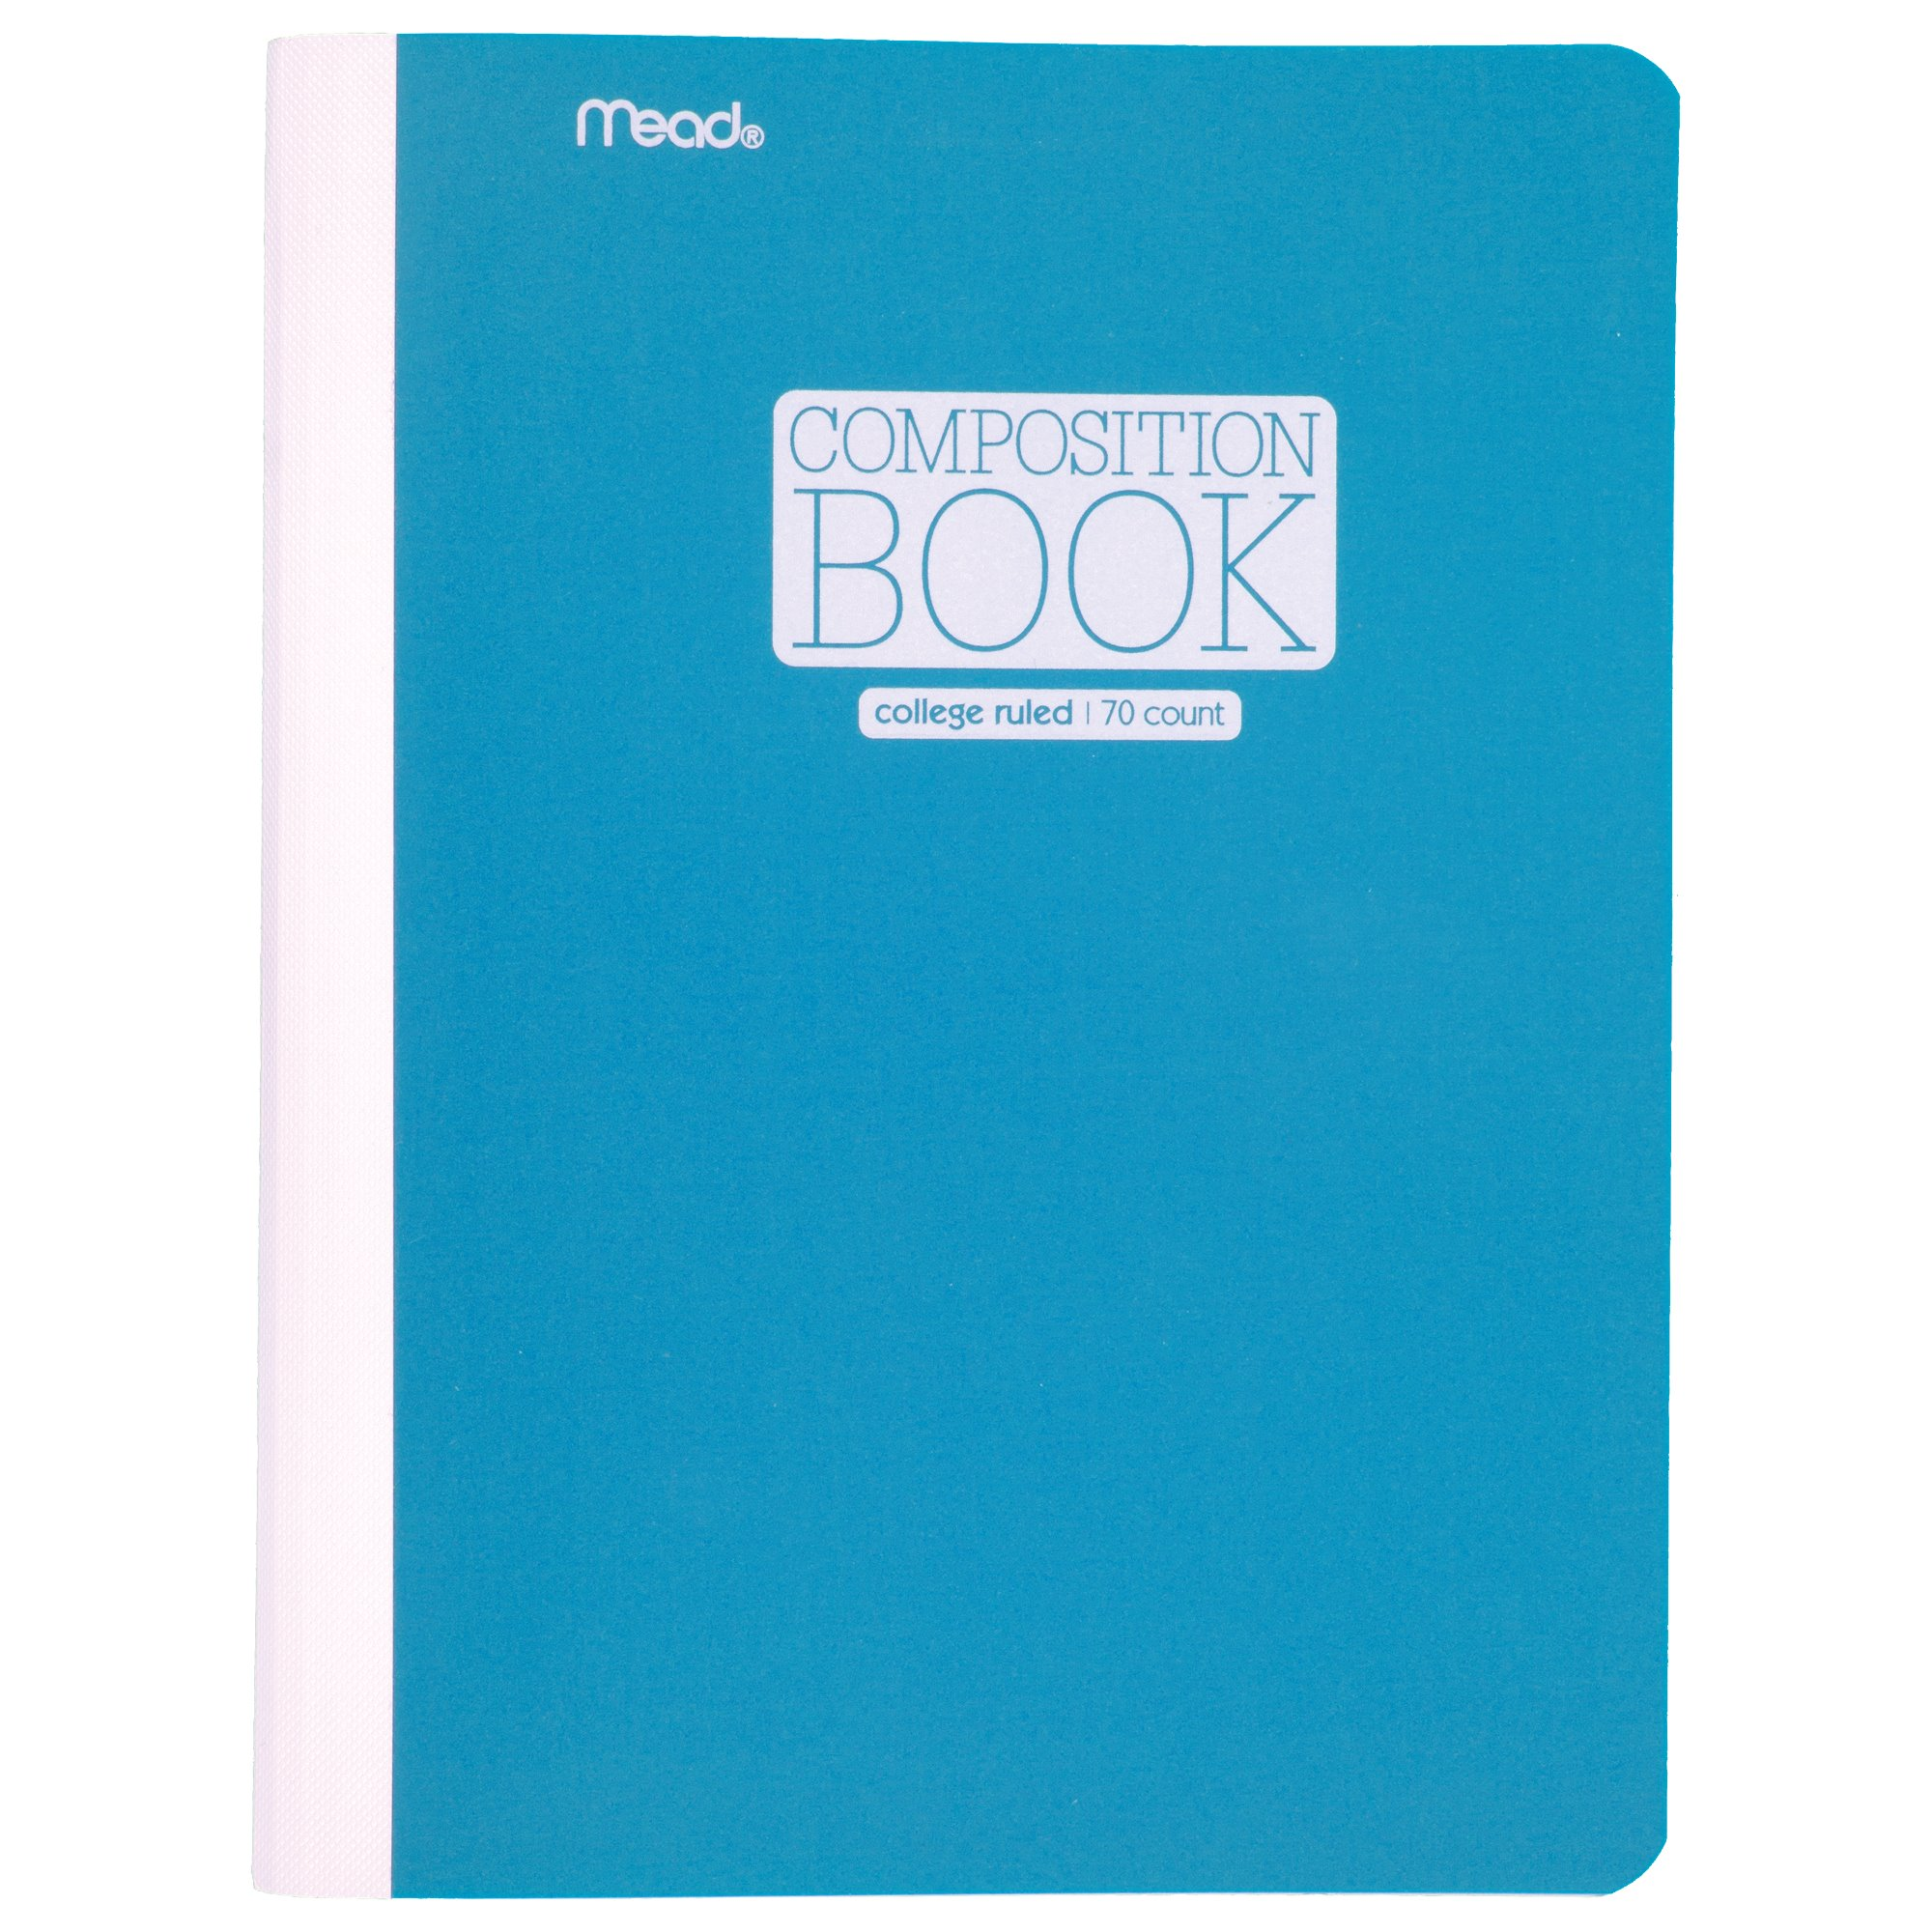 Mead Composition Book College Ruled - Student Supplies